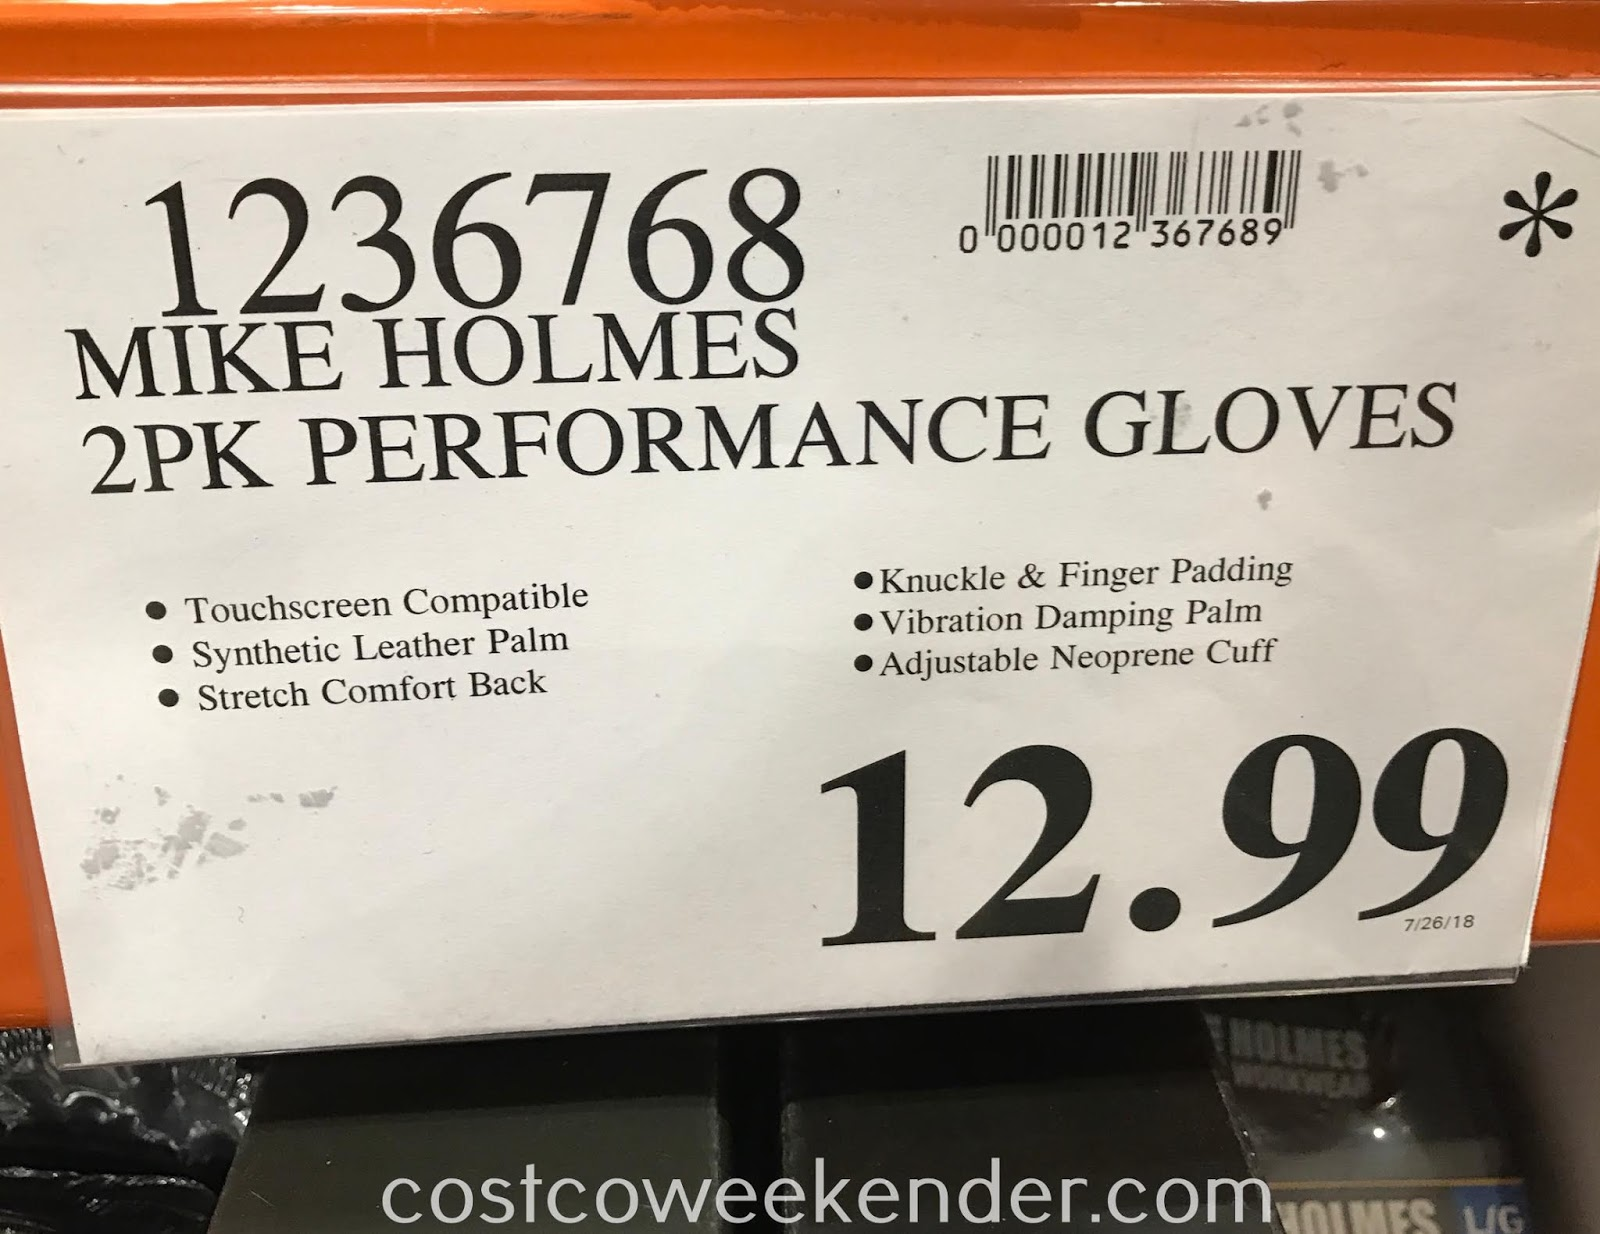 Deal for 2 pairs of Holmes Workwear High-Performance Gloves at Costco